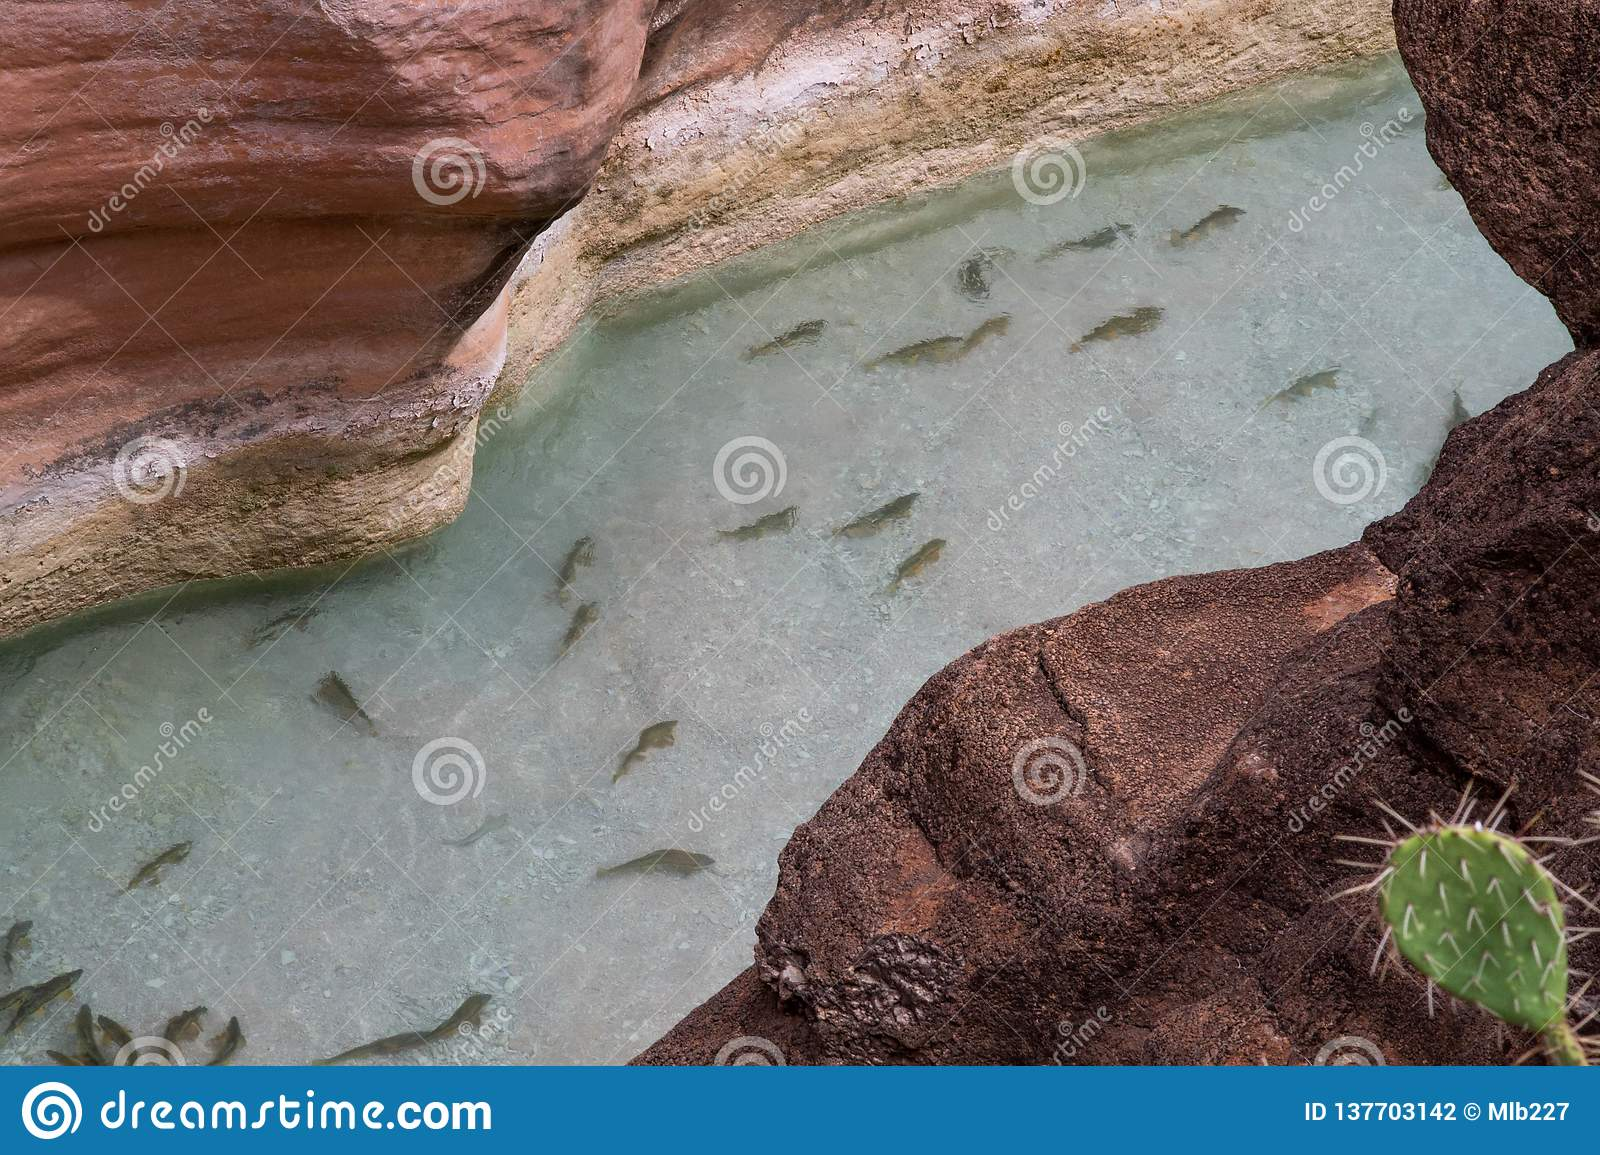 Fish in the clear blue waters of a slot canyon